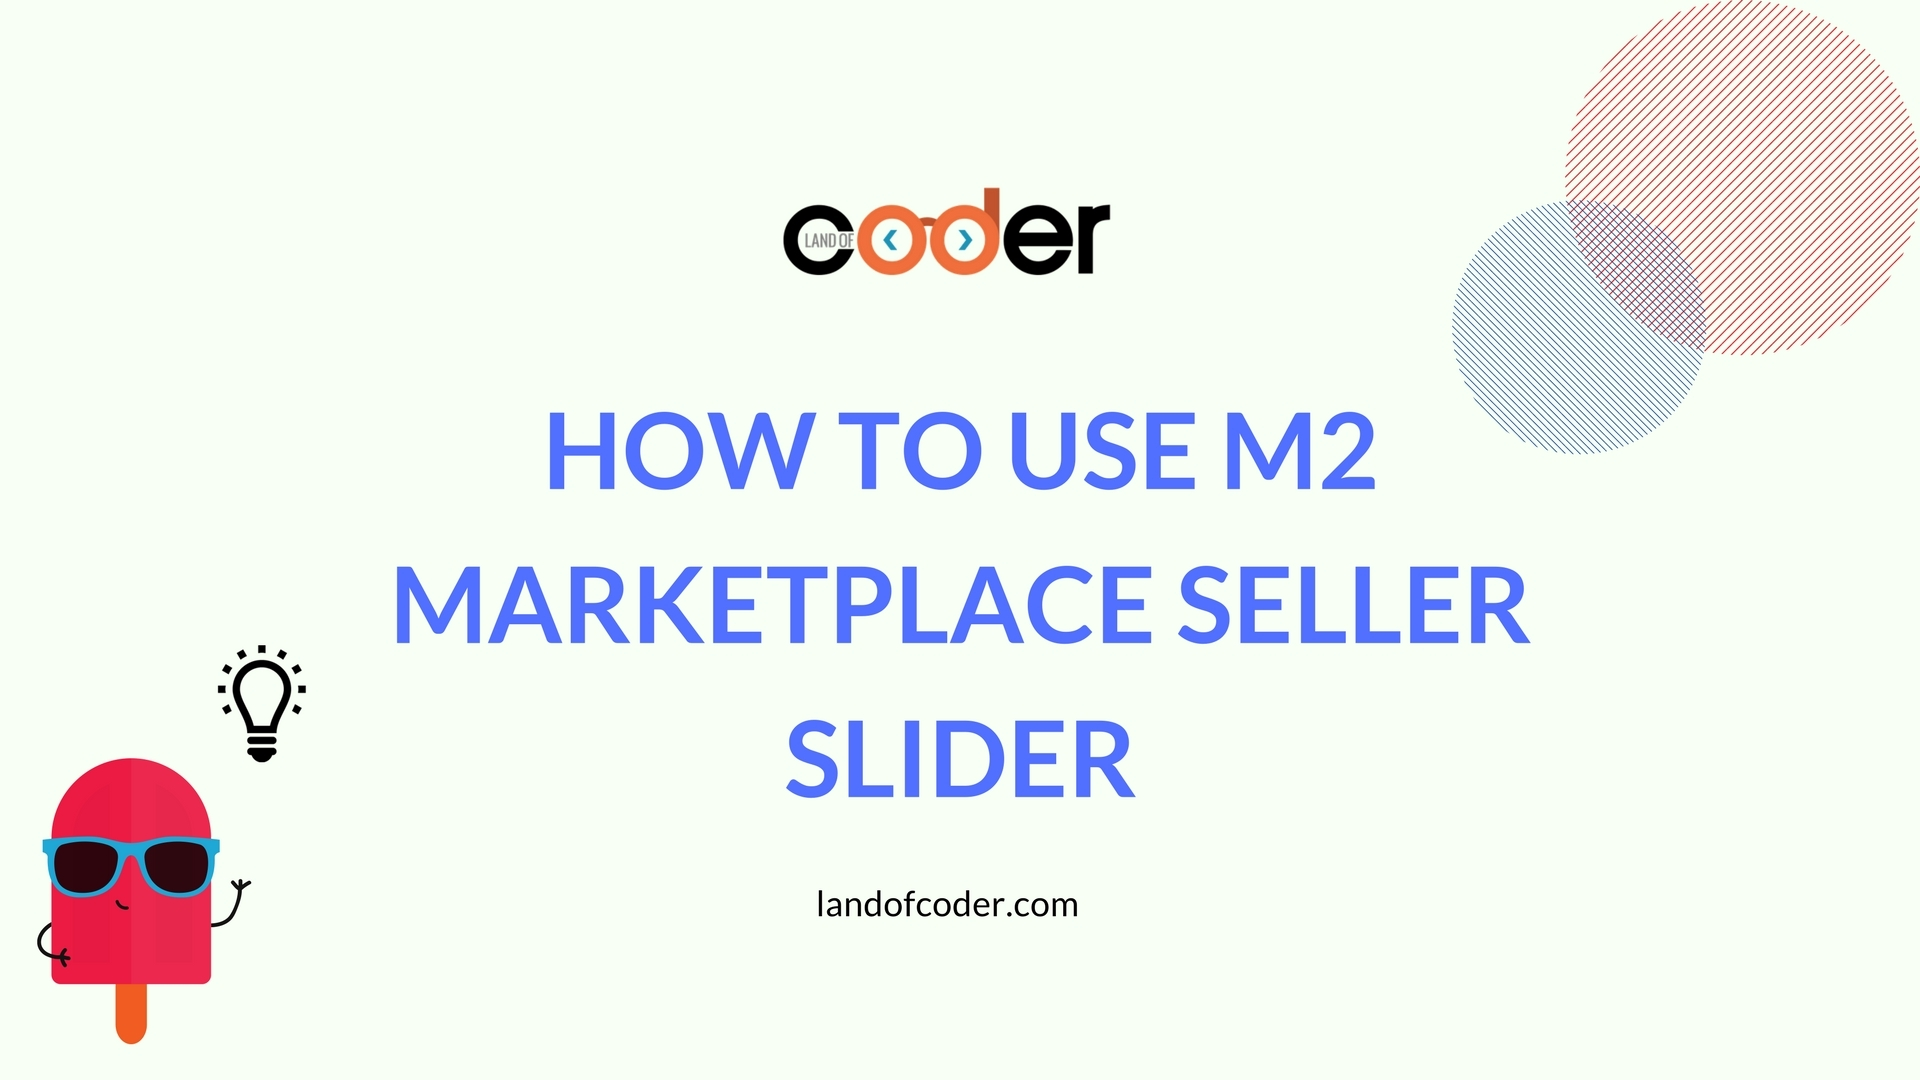 How to use magento 2 marketplace seller slider